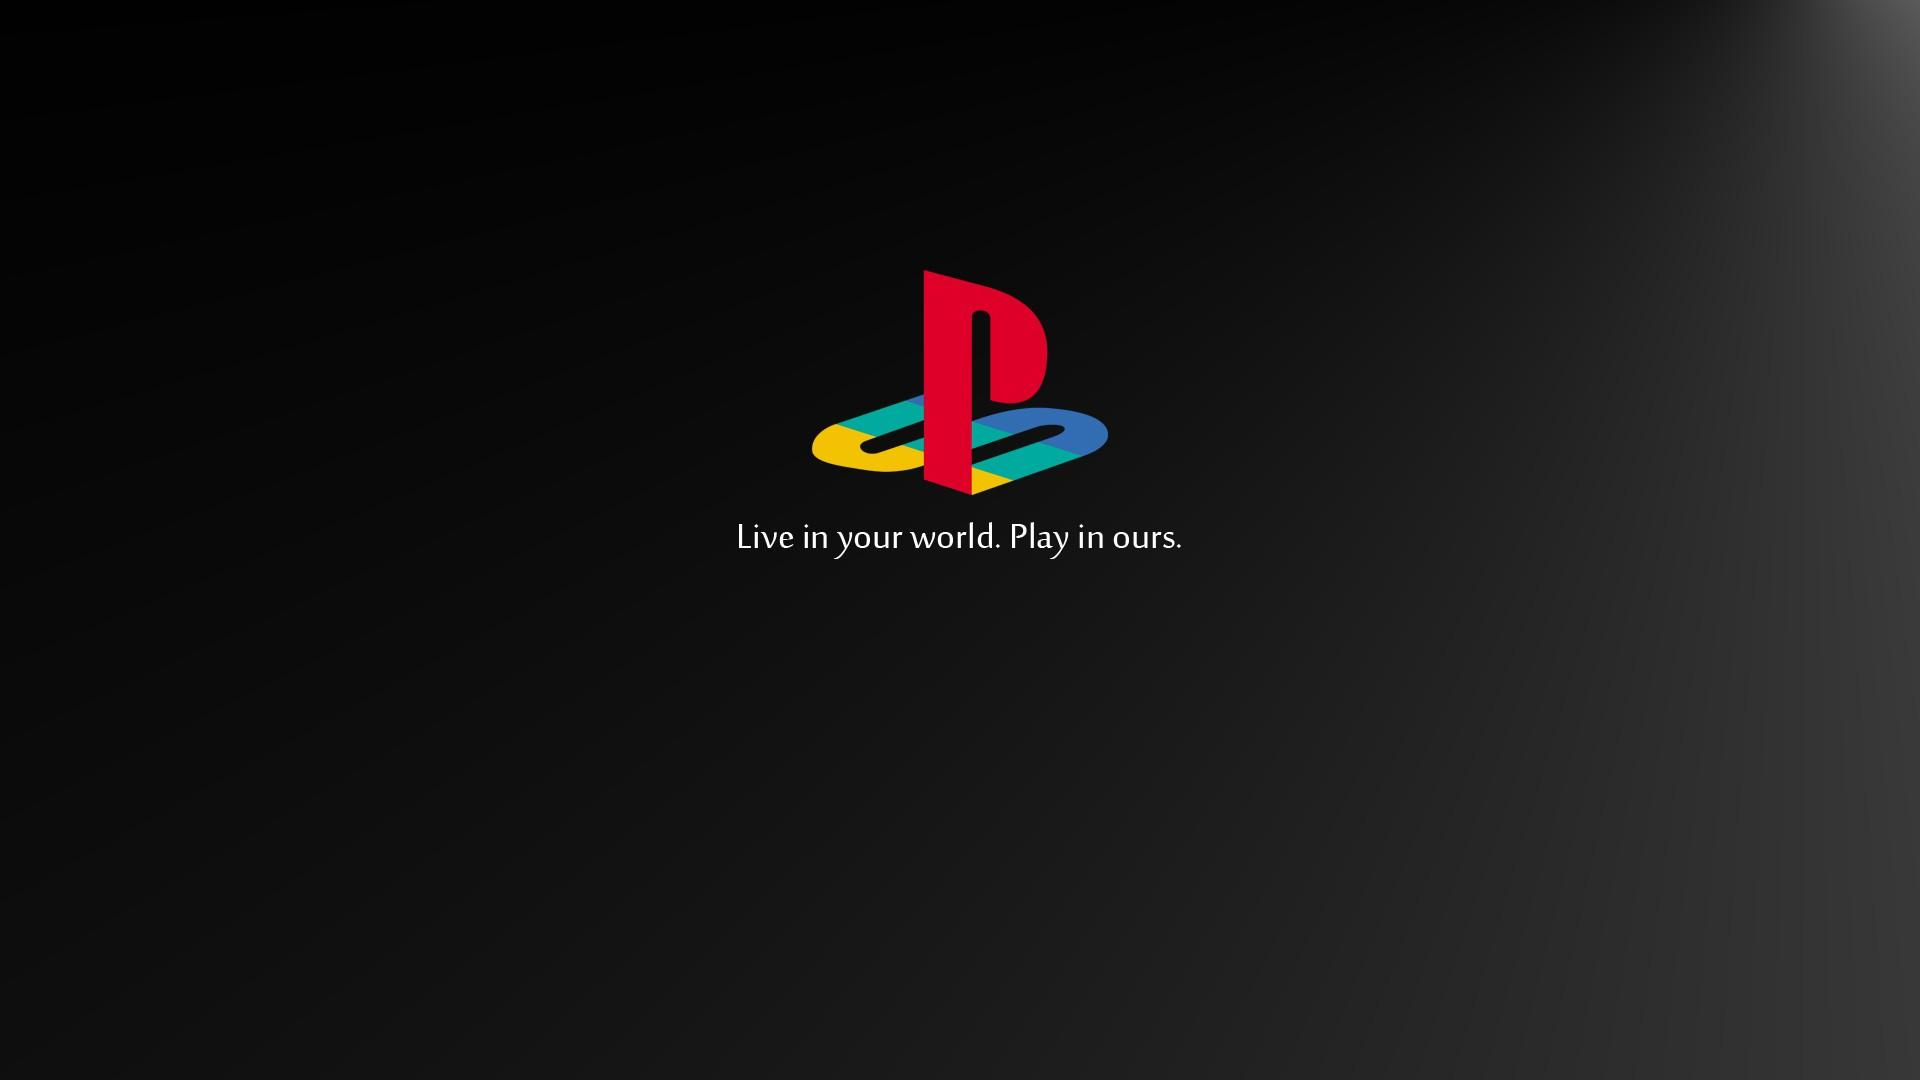 Ps4 wallpaper | 1920x1080 | #52632